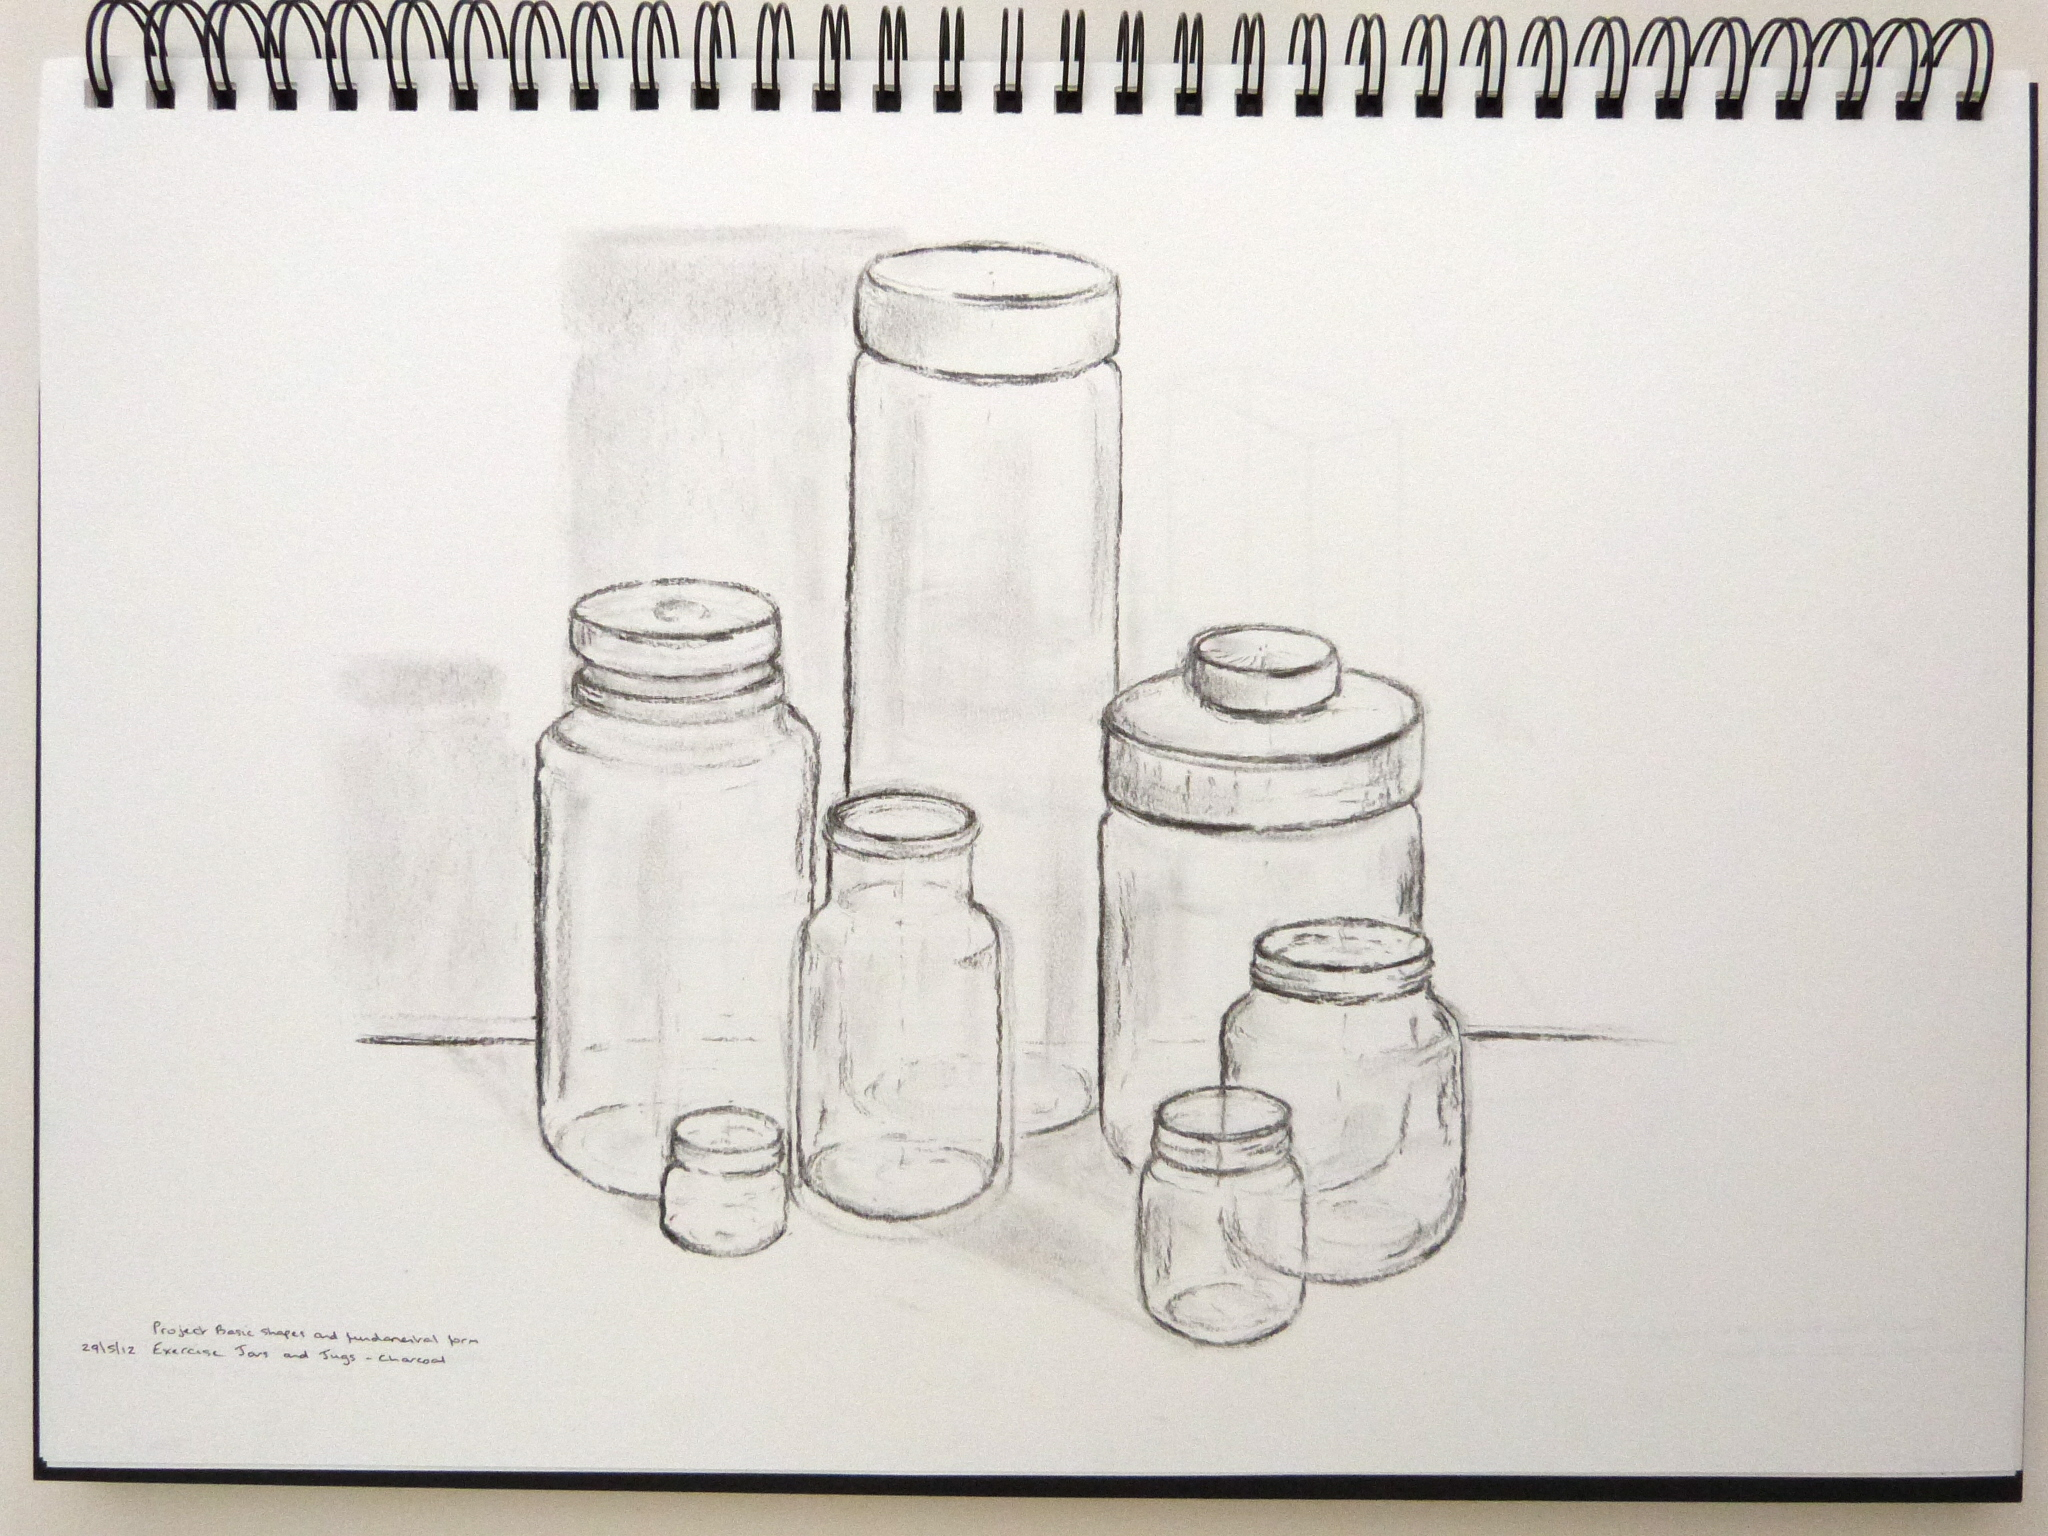 clip freeuse download Exercise Jars and jugs